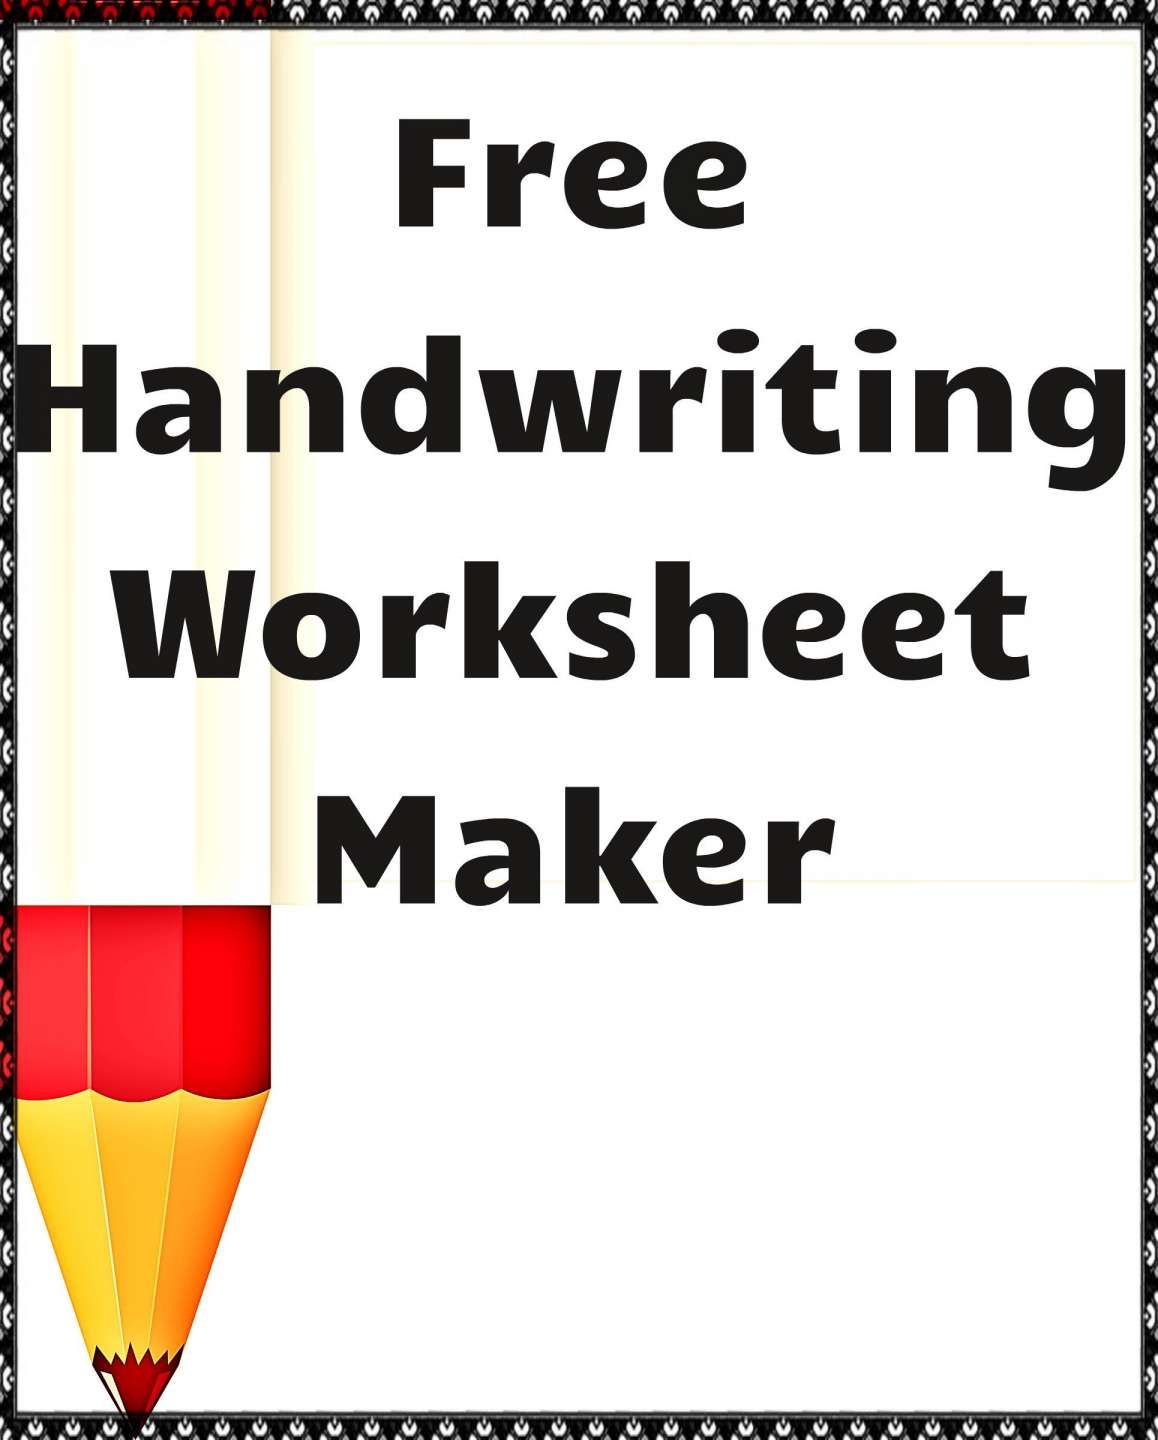 7 Kindergarten Writing Worksheet Maker